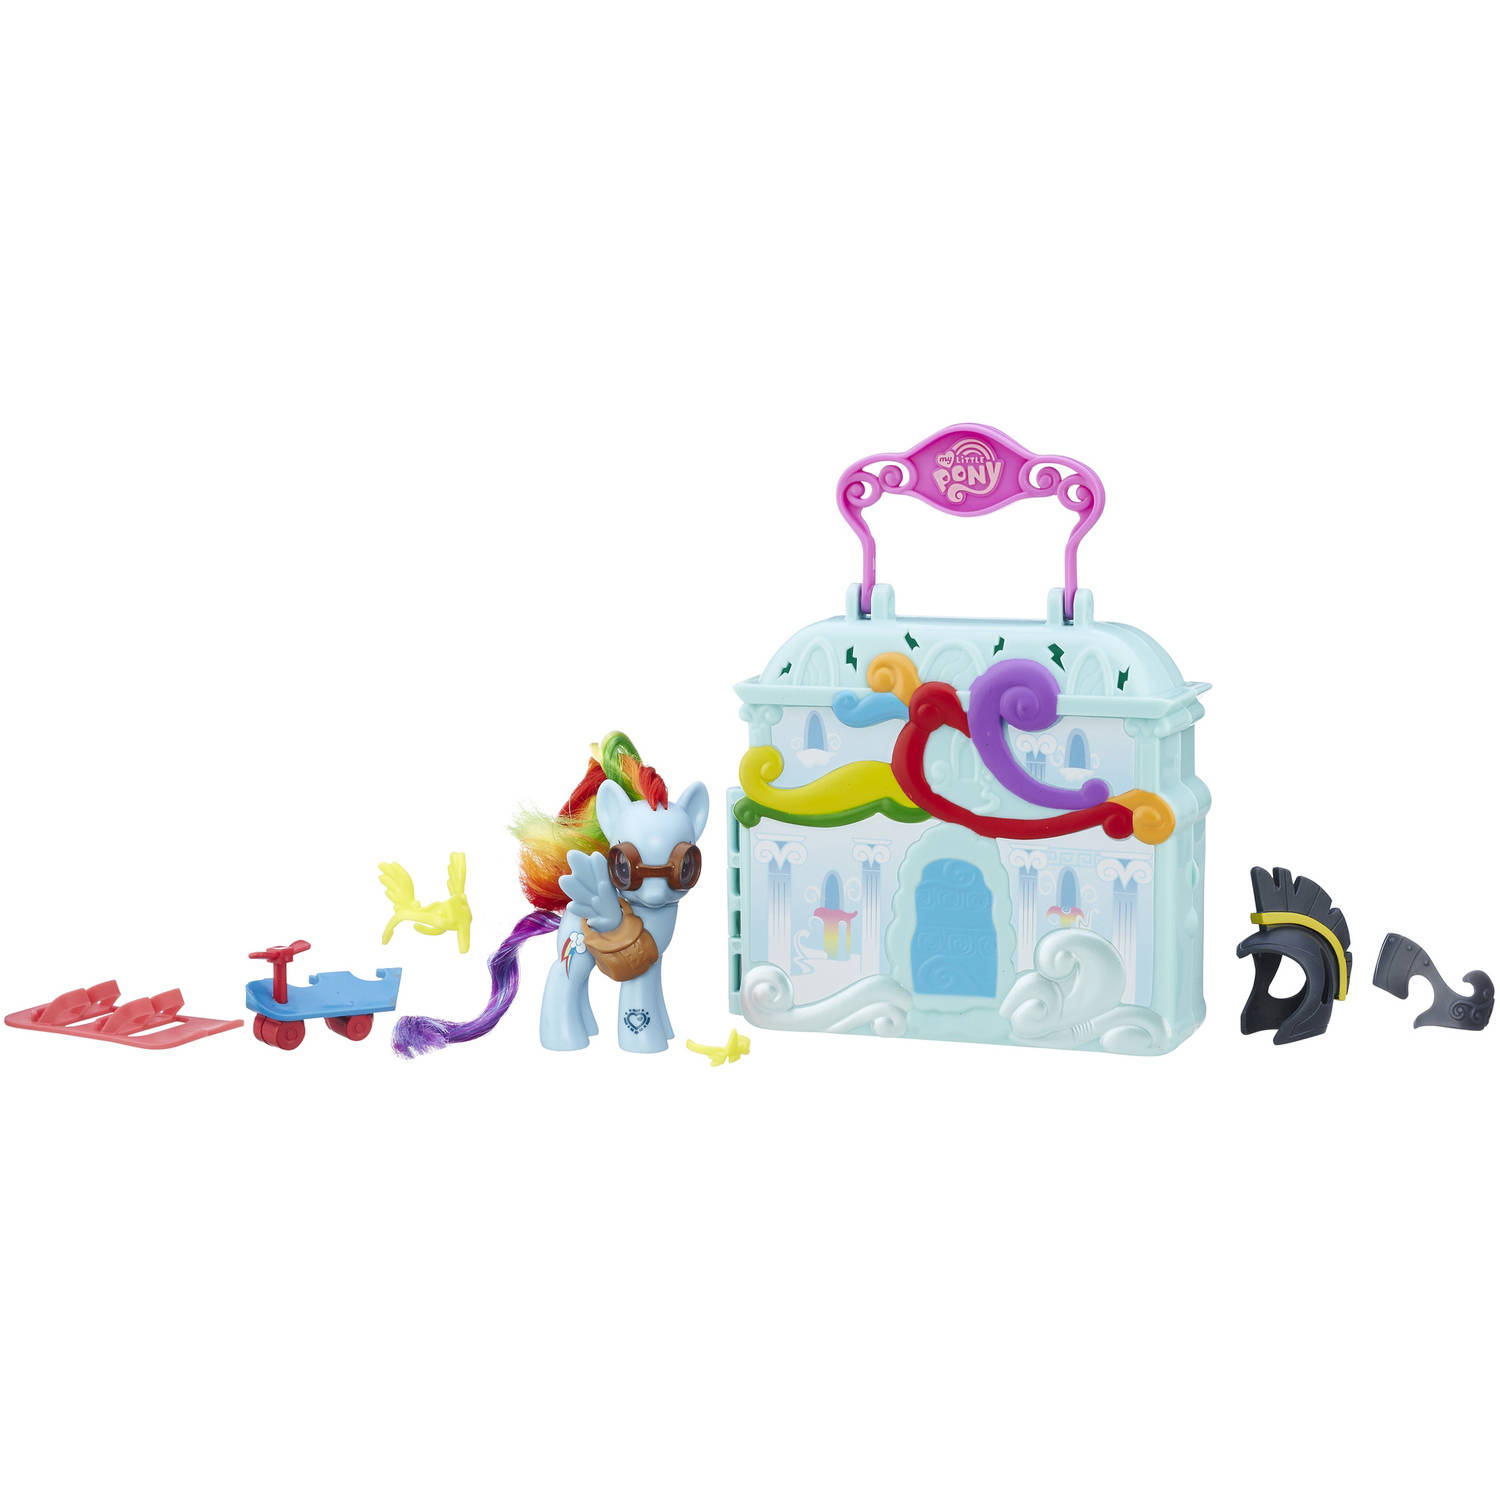 My Little Pony Friendship is Magic Rainbow Dash Cloudominium Playset by Hasbro